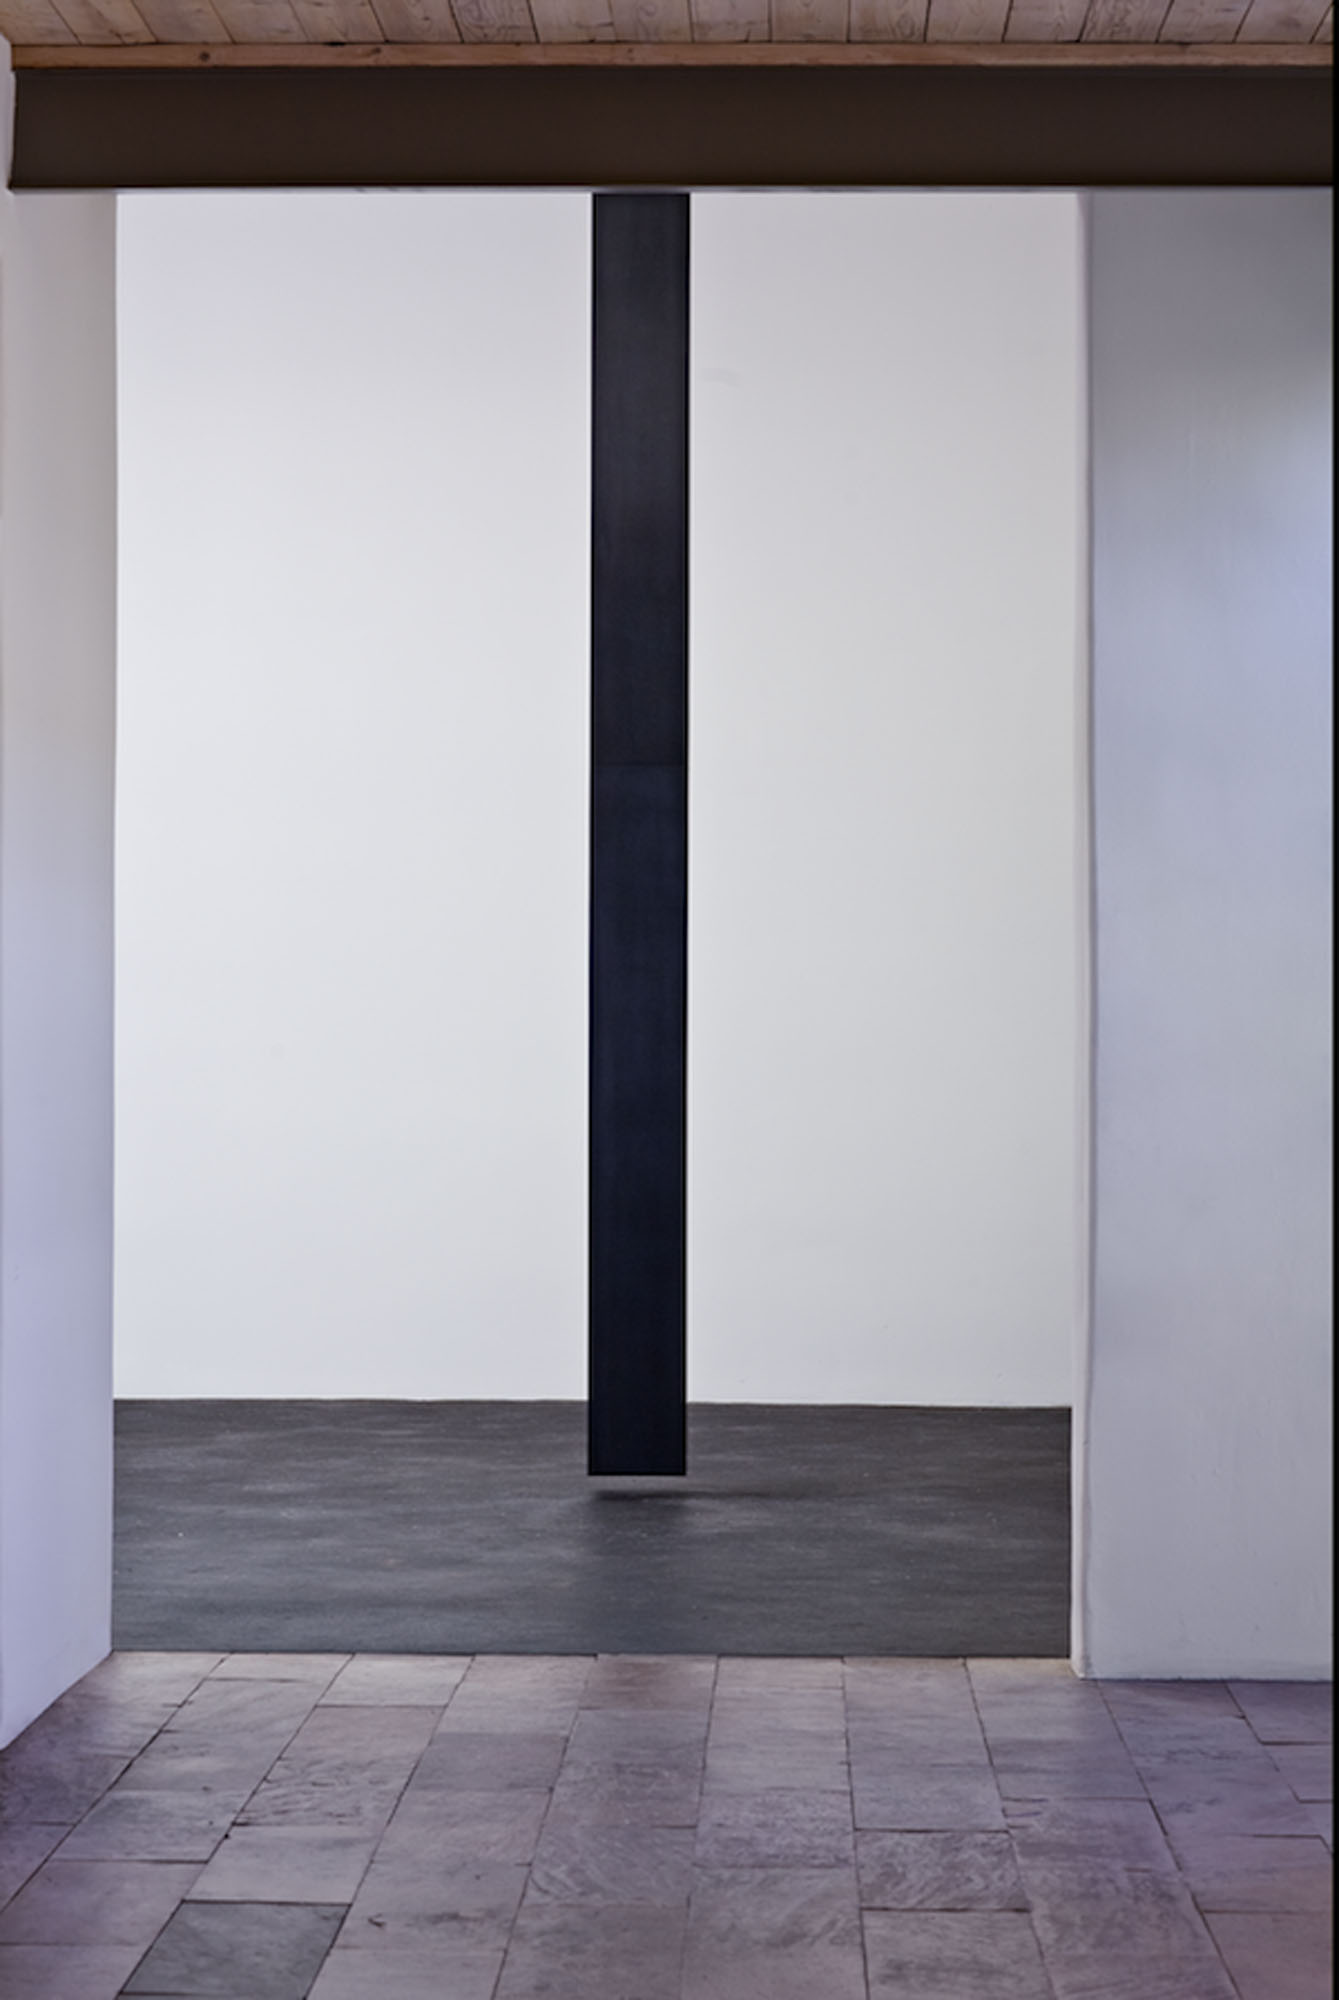 """Floating Column, 2008  Solid graphite, 14' x 10"""" x 10"""" x 9.5""""  Lannan Foundation collection. Photo: Jamey Stillings"""